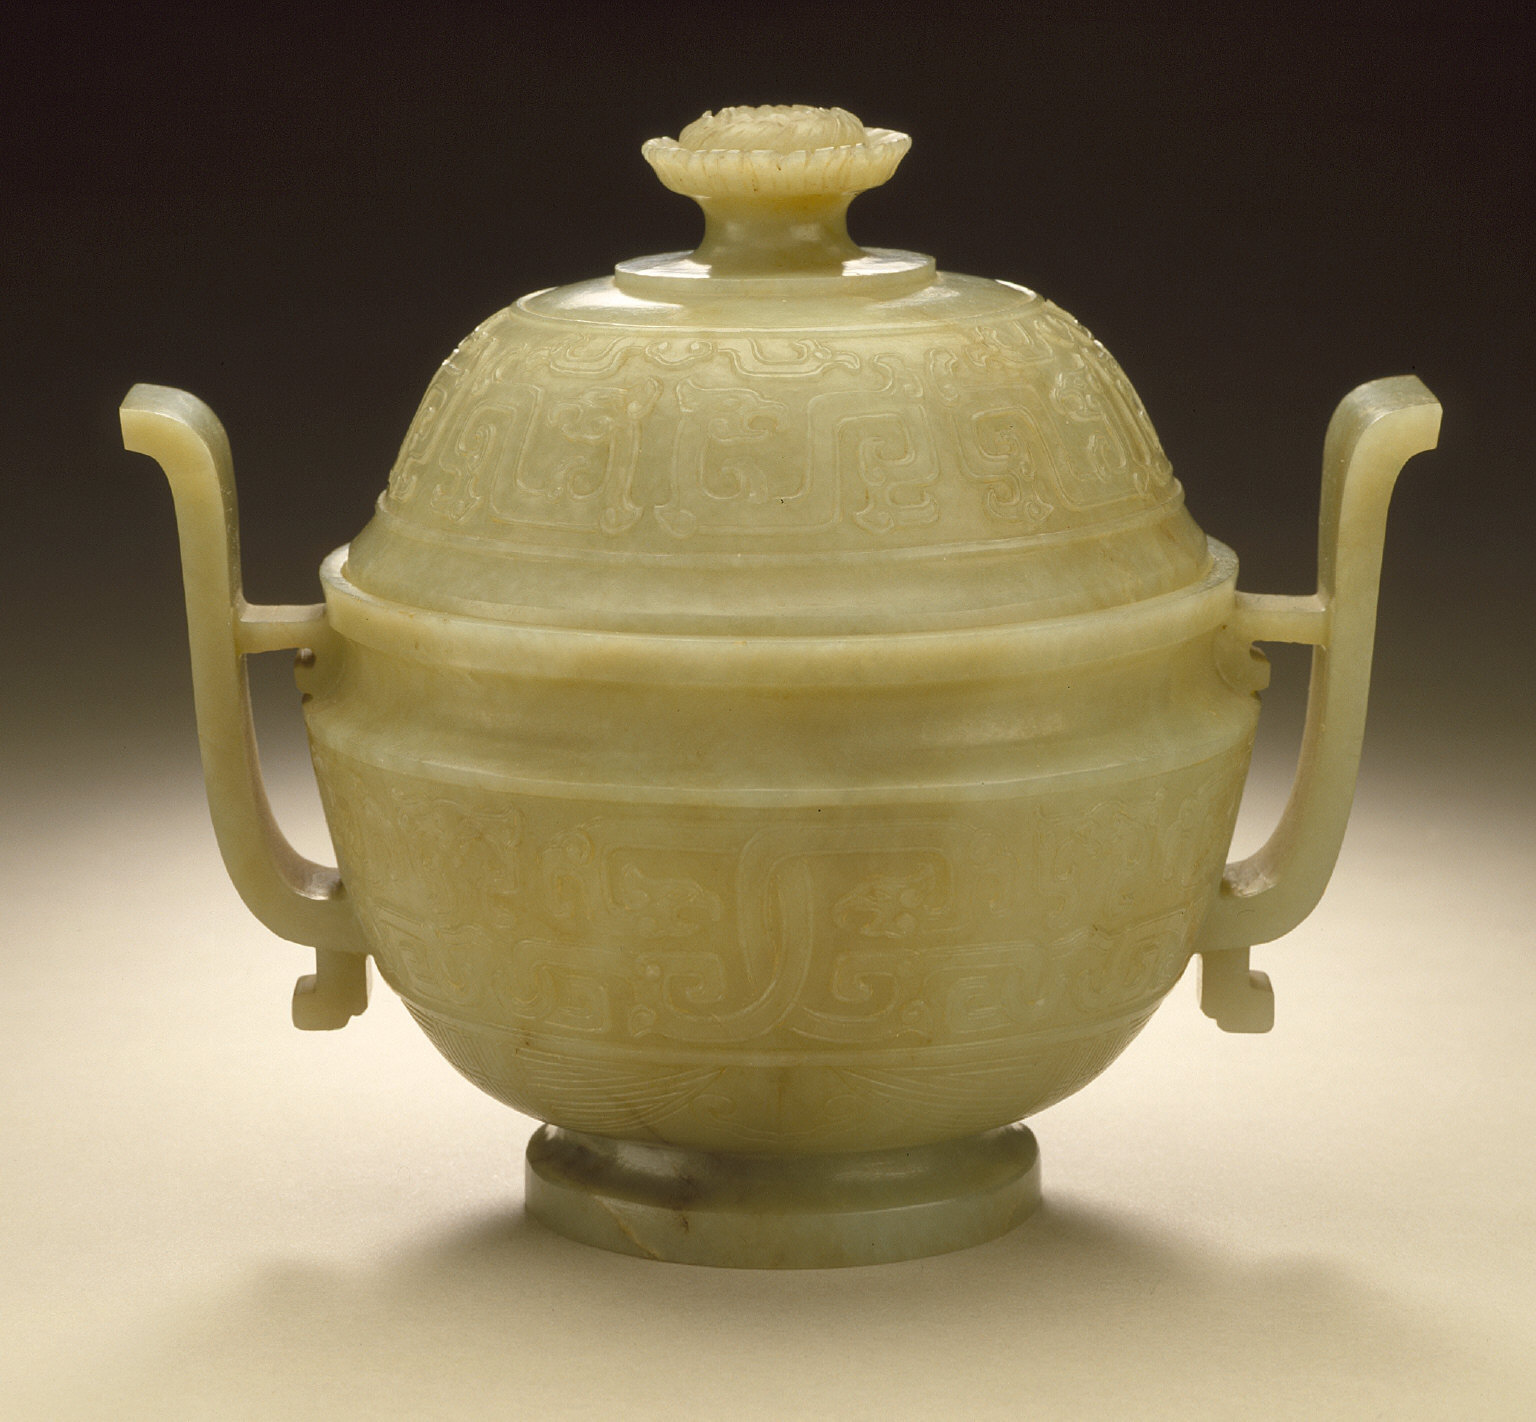 Lidded Incense Burner (Lu) in the Form of an Ancient Ritual Grain Server (Gui) with Interlaced Dragons